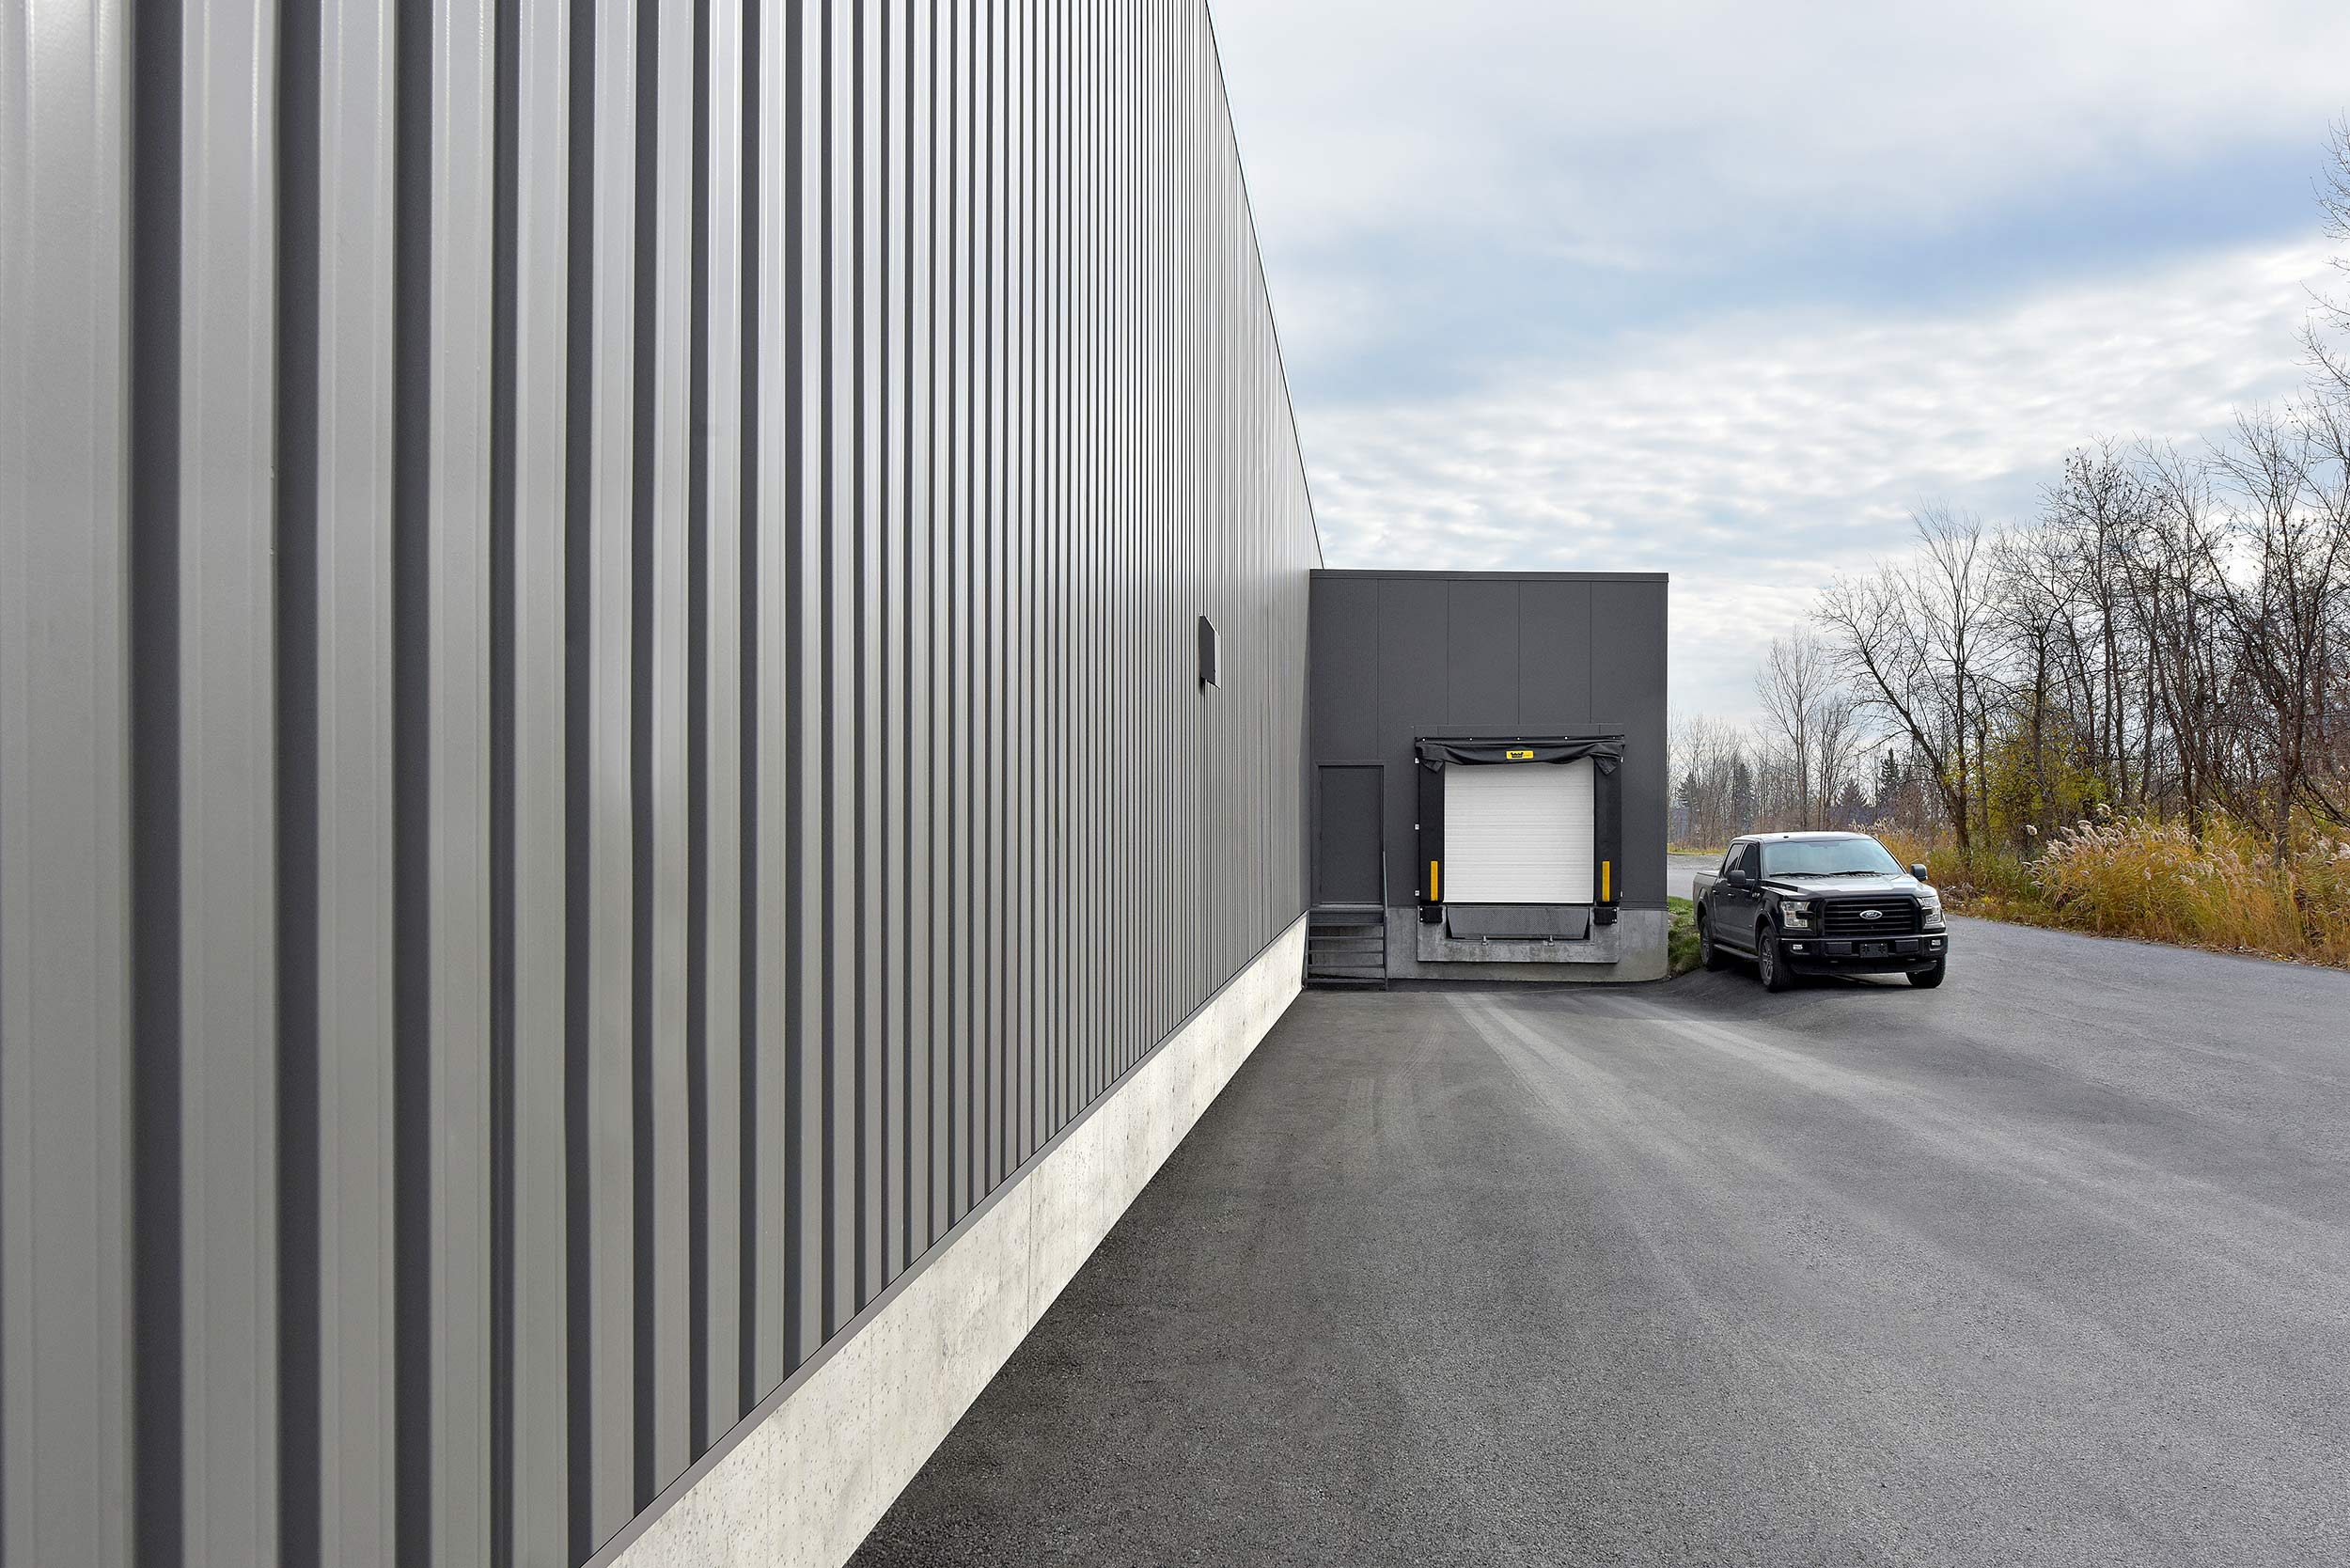 Exterieur Tigre Geant 3630 Chemin De Chambly, Longueuil - Phase 1 - Groupe Module